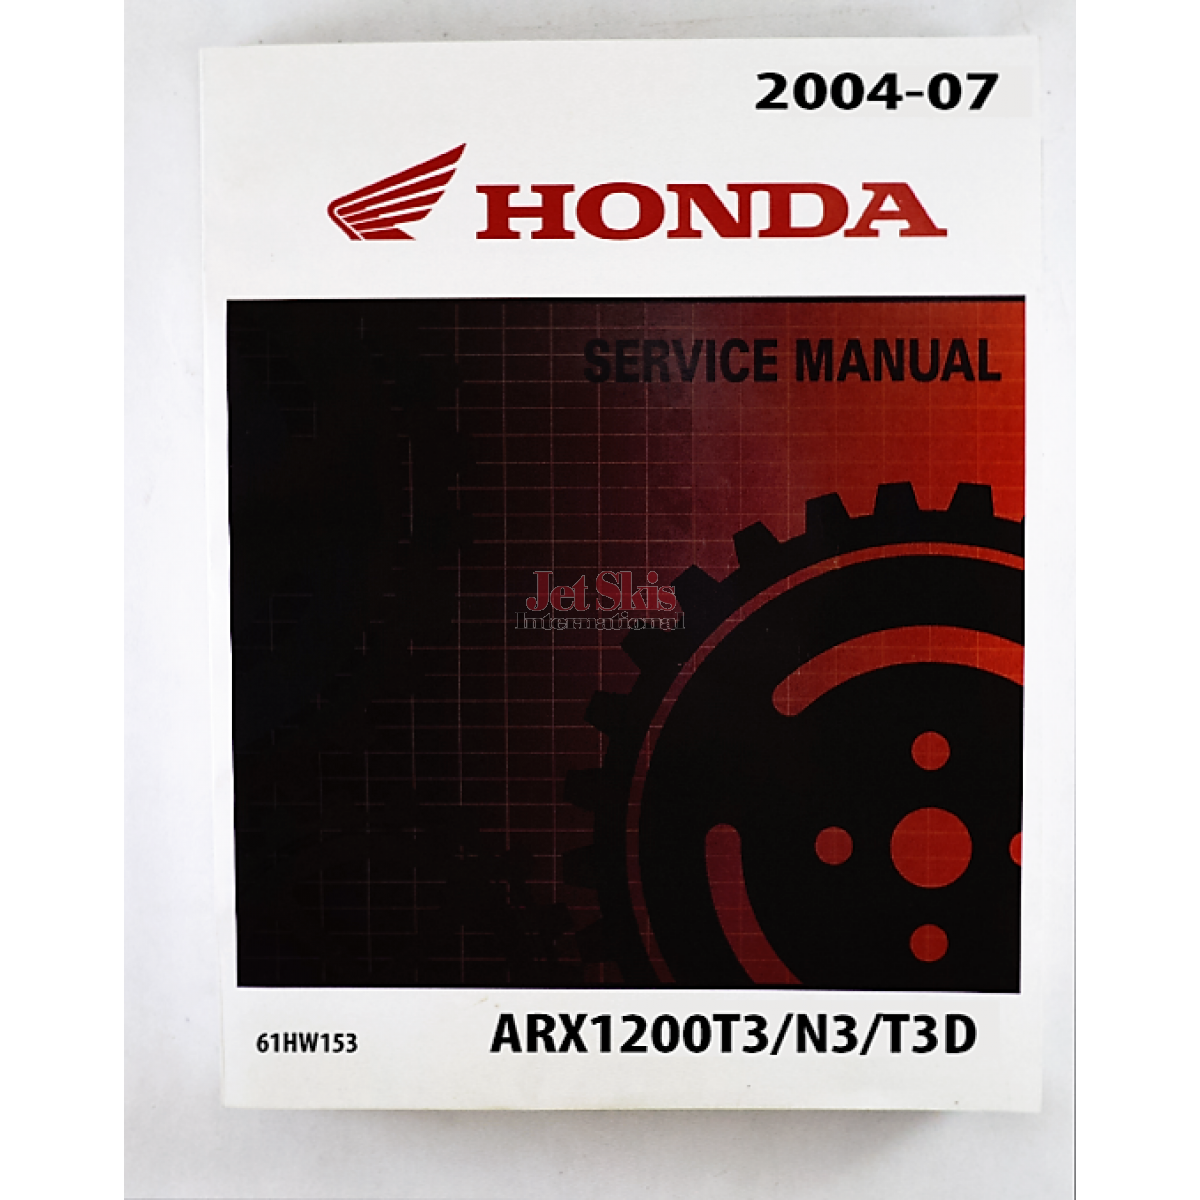 honda aquatrax f12 f12x service and shop manual 61hw101 jet skis rh jetskisint com Honda Motorcycle Service Manual Kohler Engines Service Manual